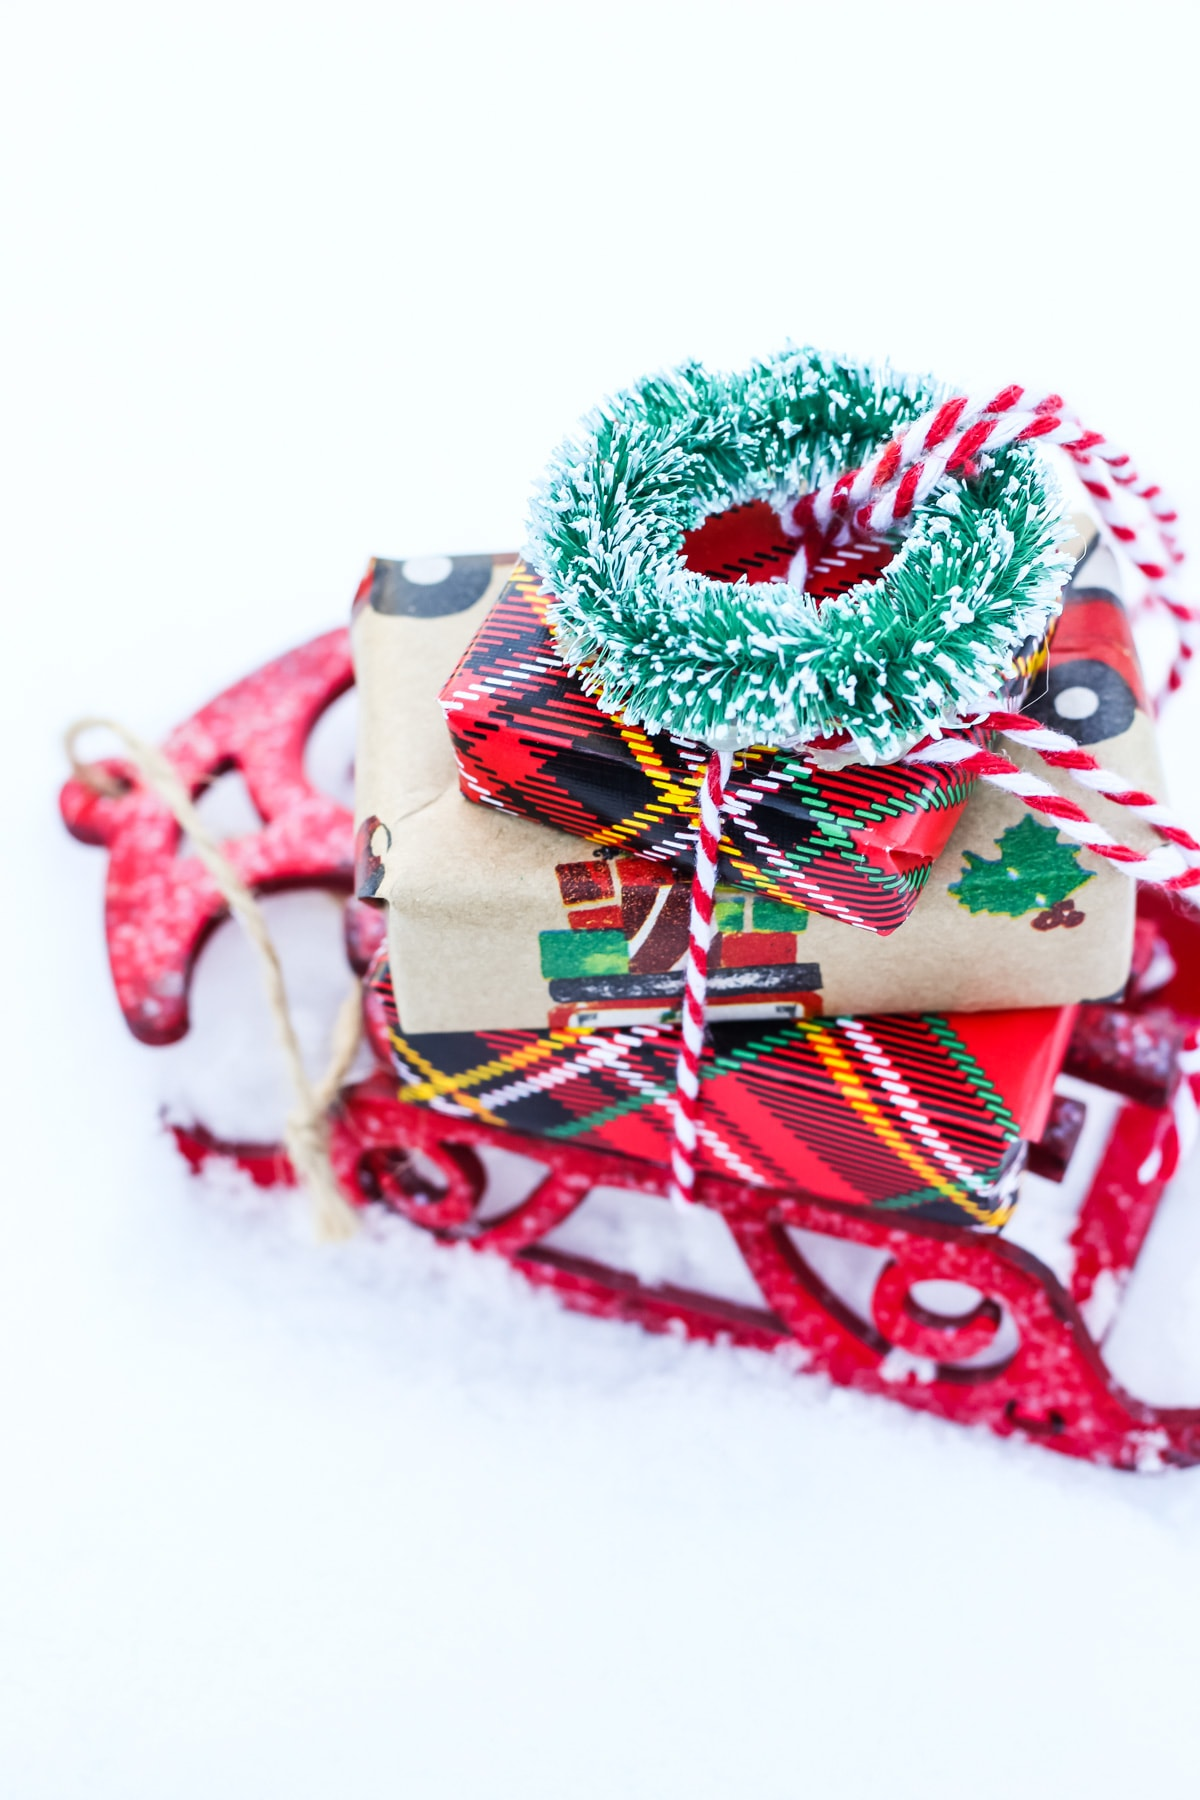 A Christmas Sleigh Ornament in the snow